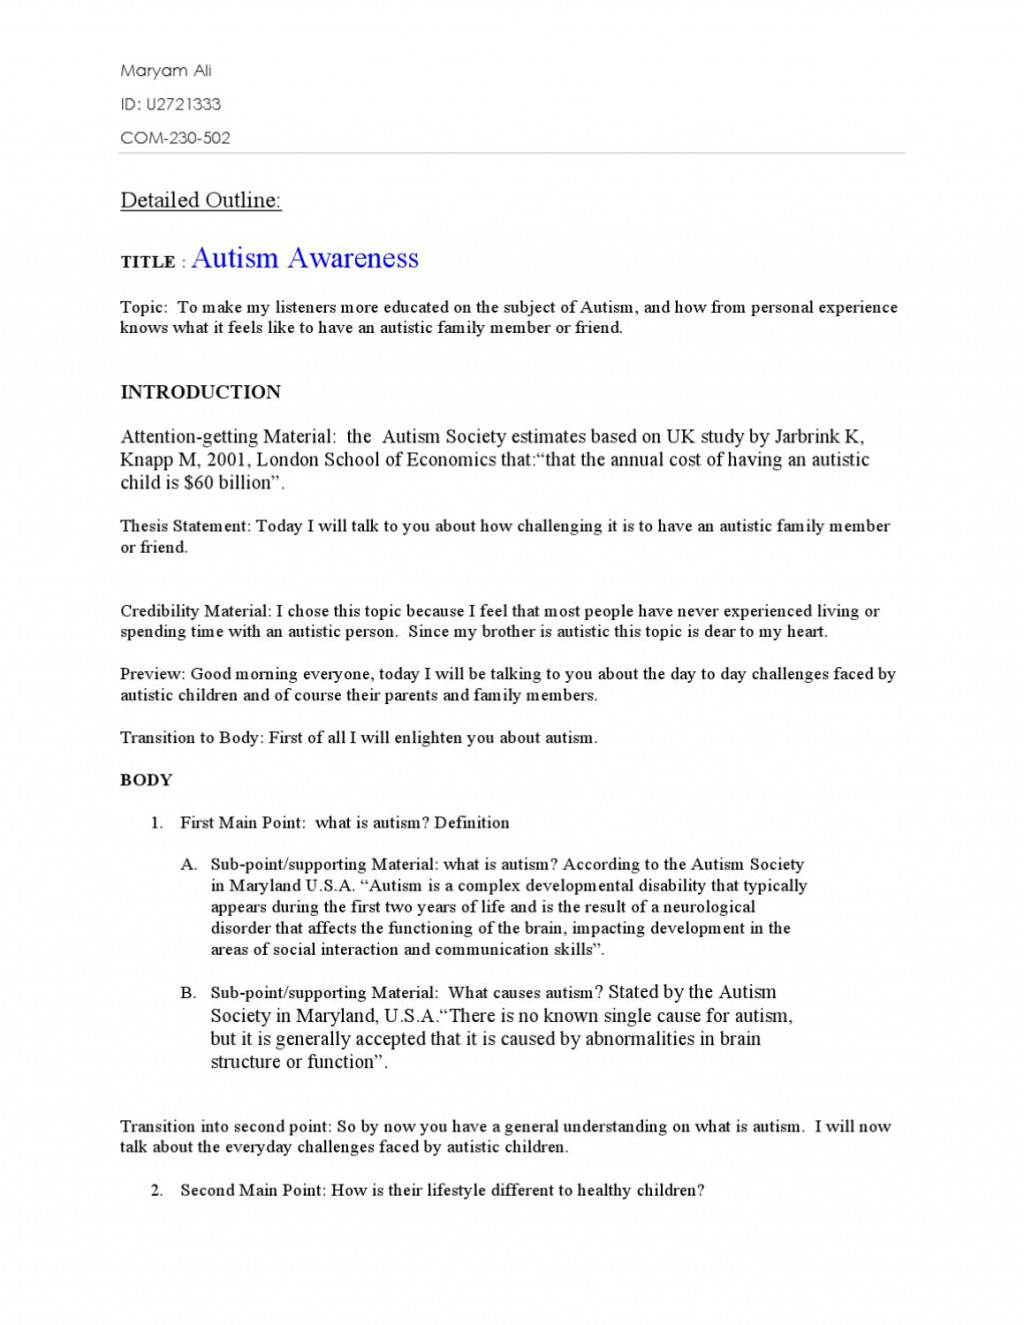 012 Autism Research Paper Thesis Statements Page 1 Awful Large